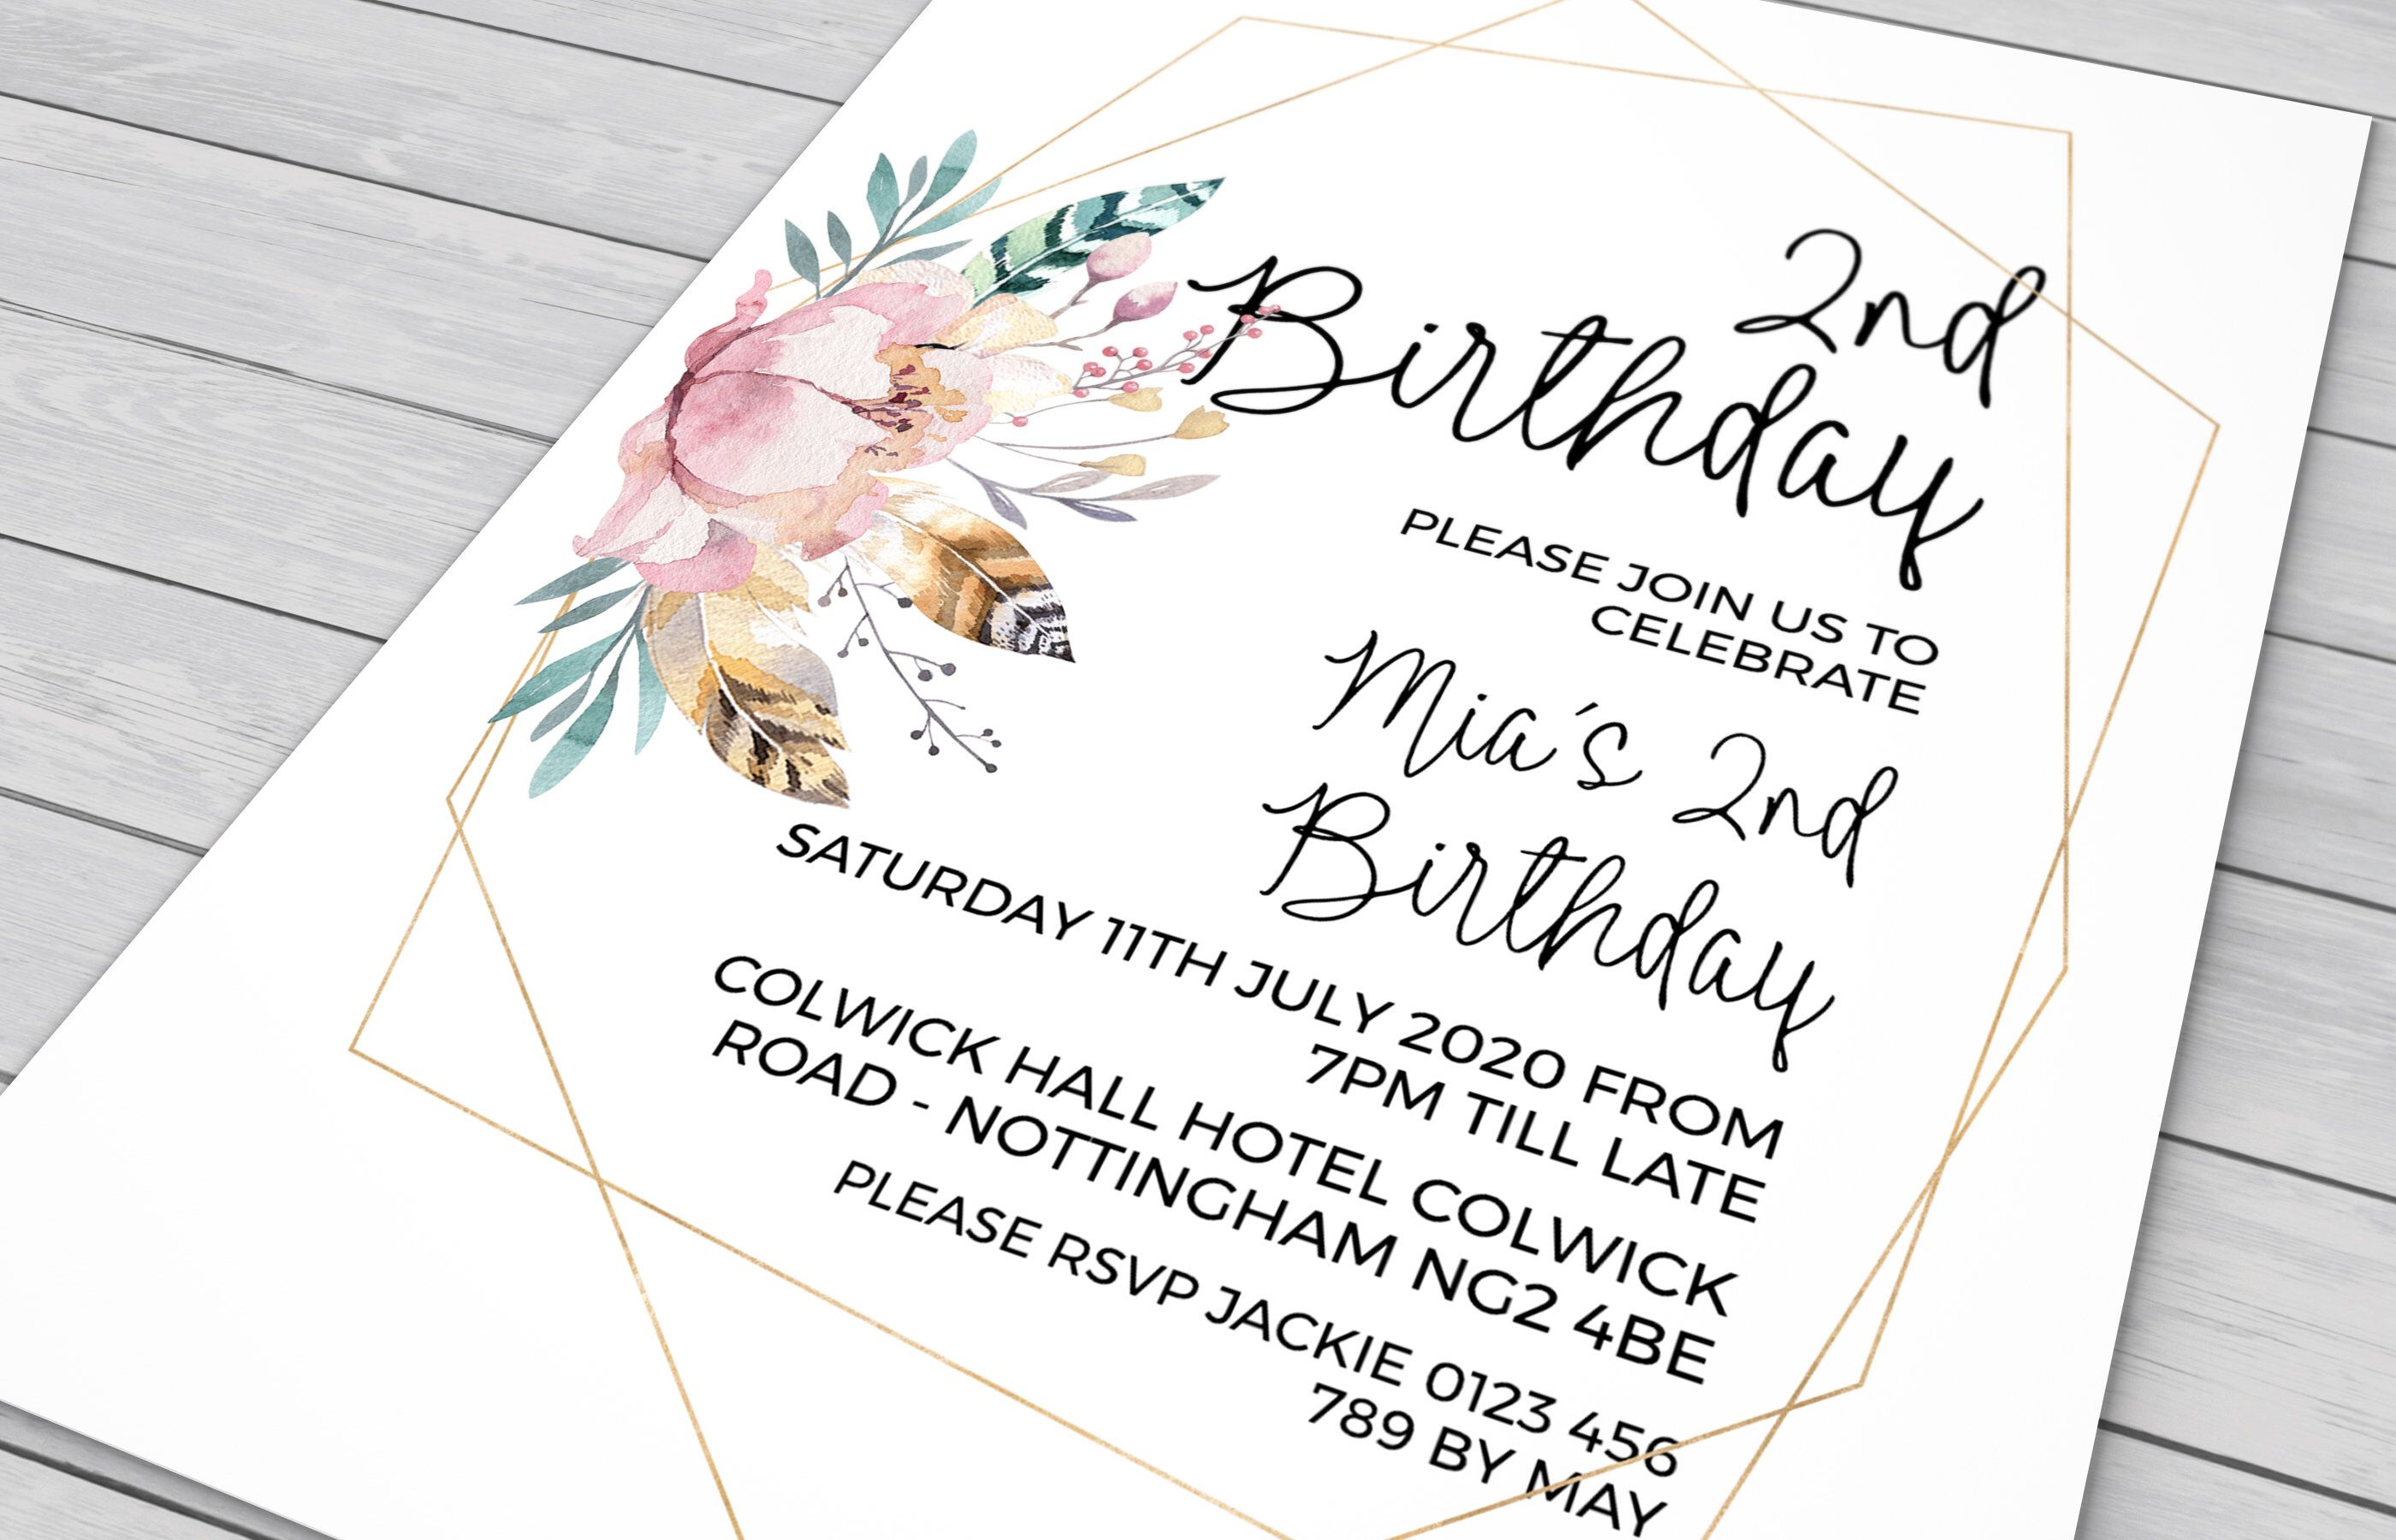 2nd Birthday Invitation In Watercolor Flowers Birthday Invitation